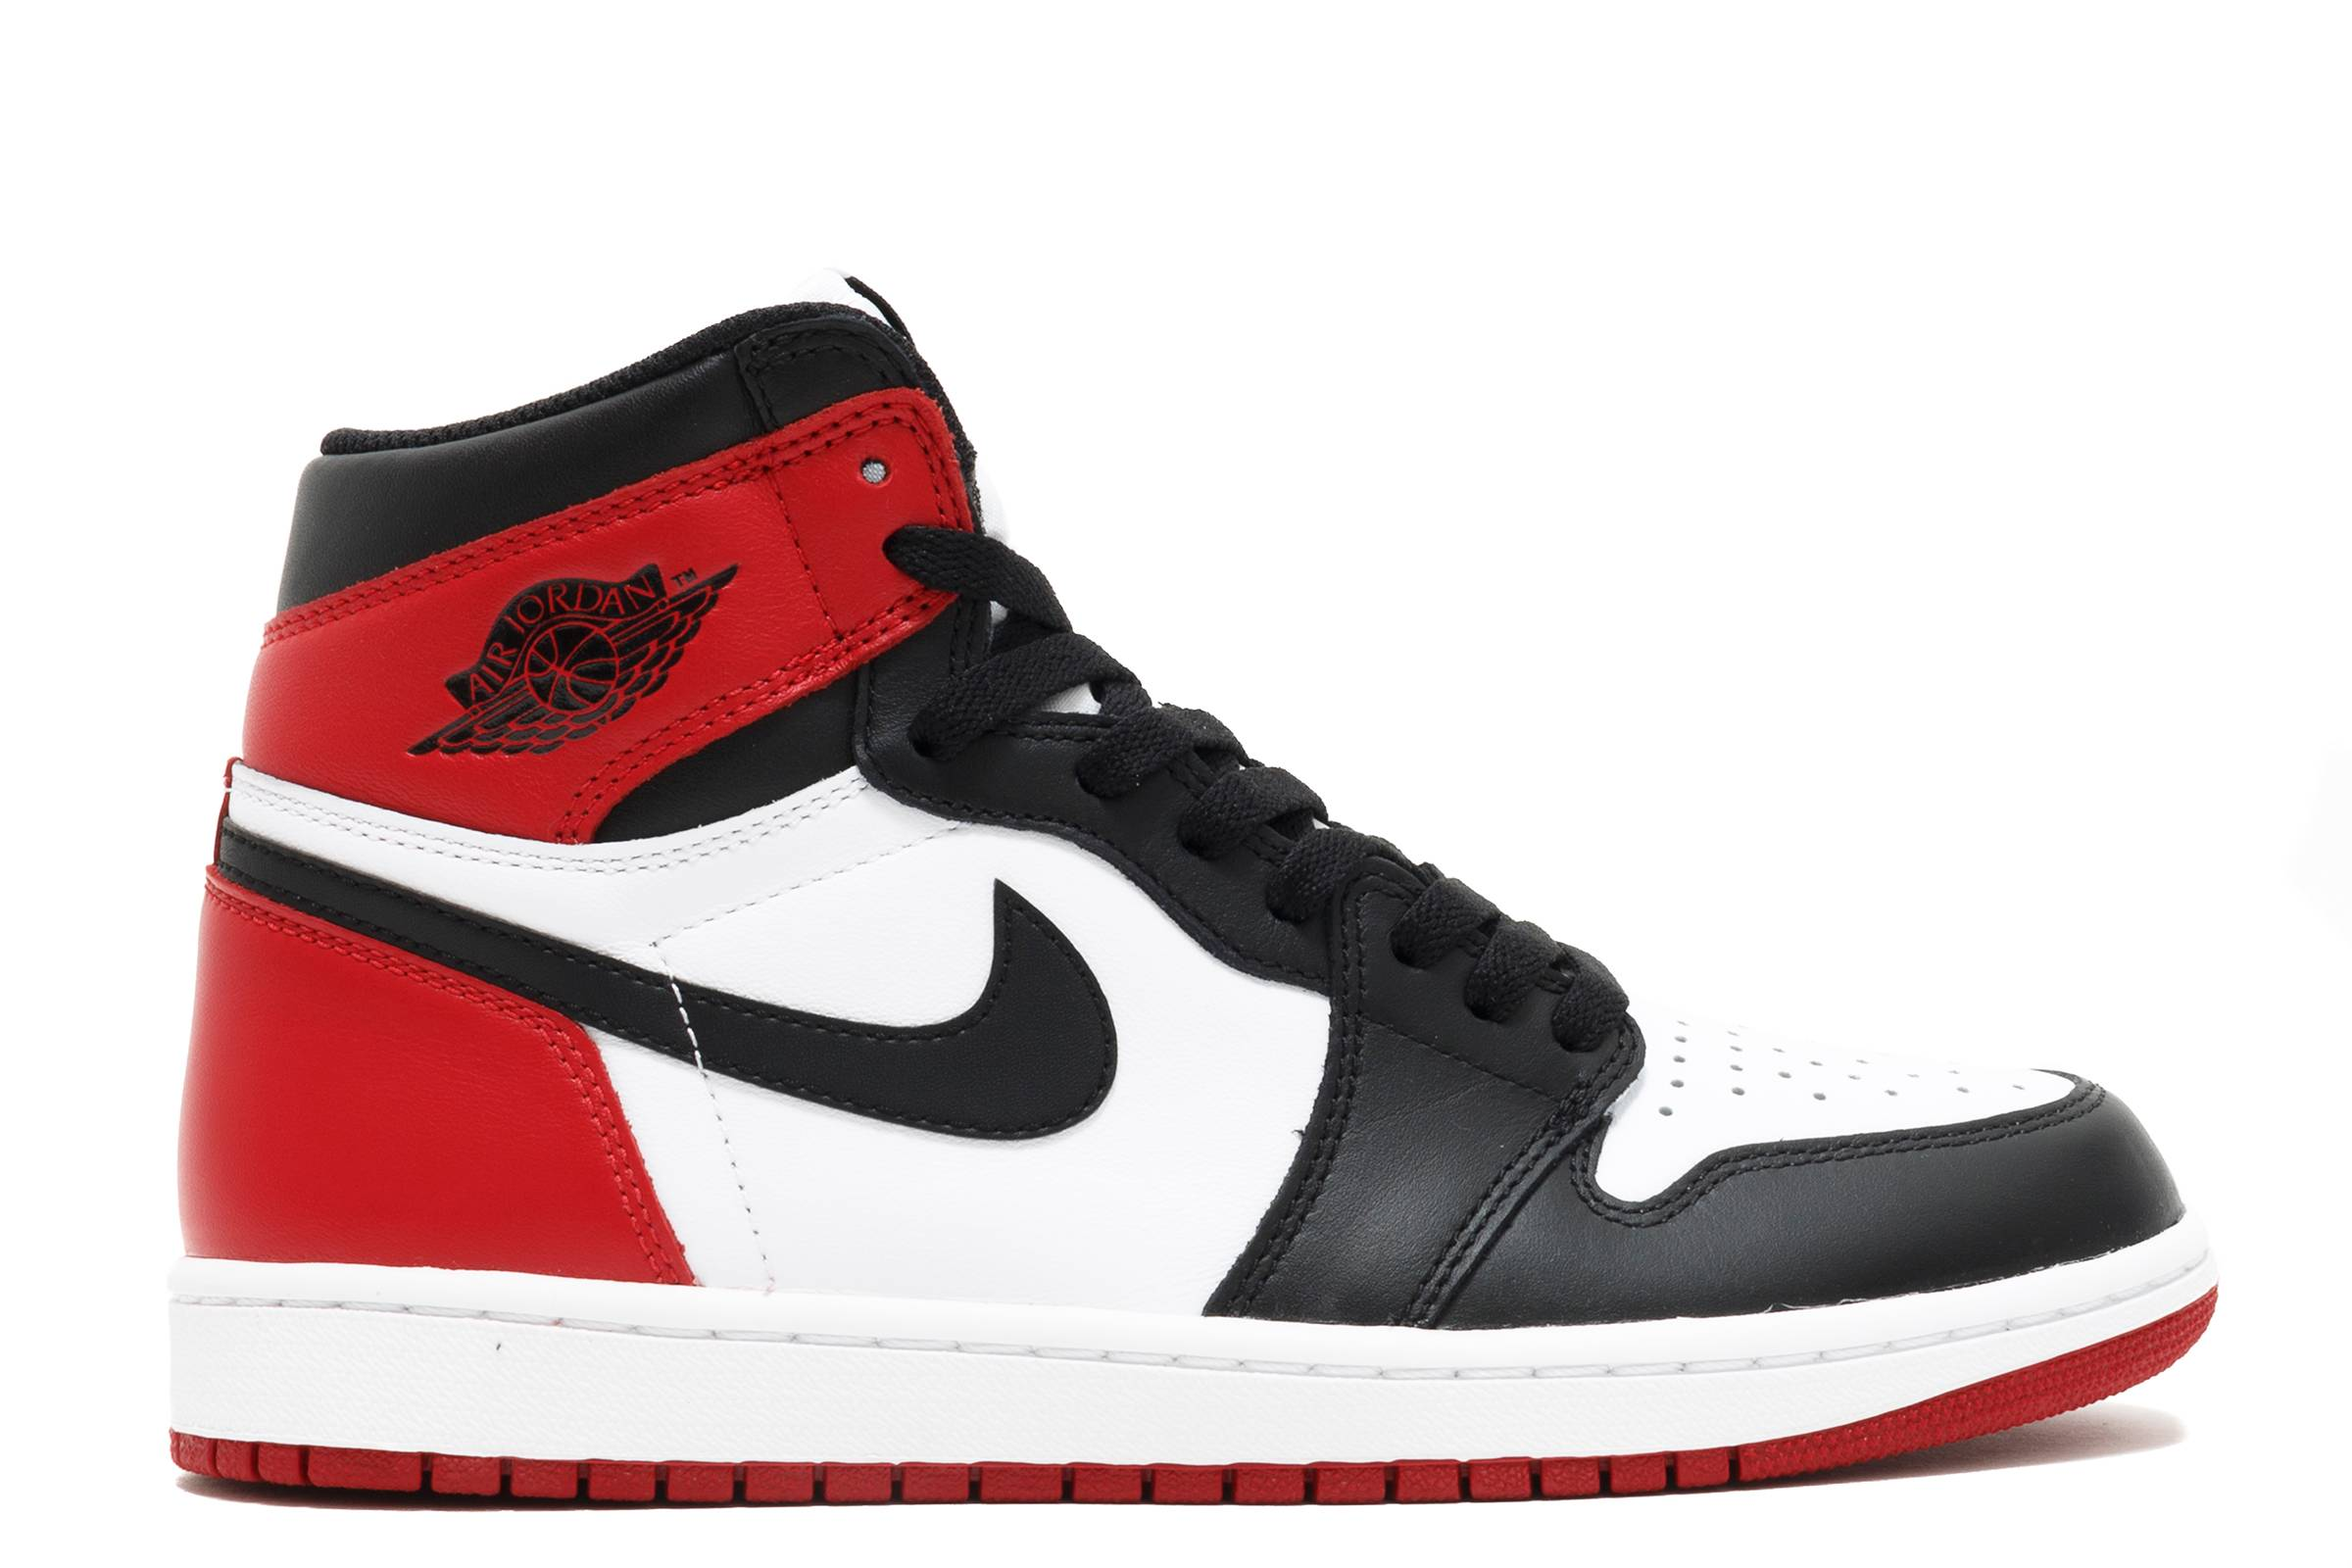 5c64df5c0a7 The One That Started It All: A History of the Jordan 1 - Jordan 1 ...